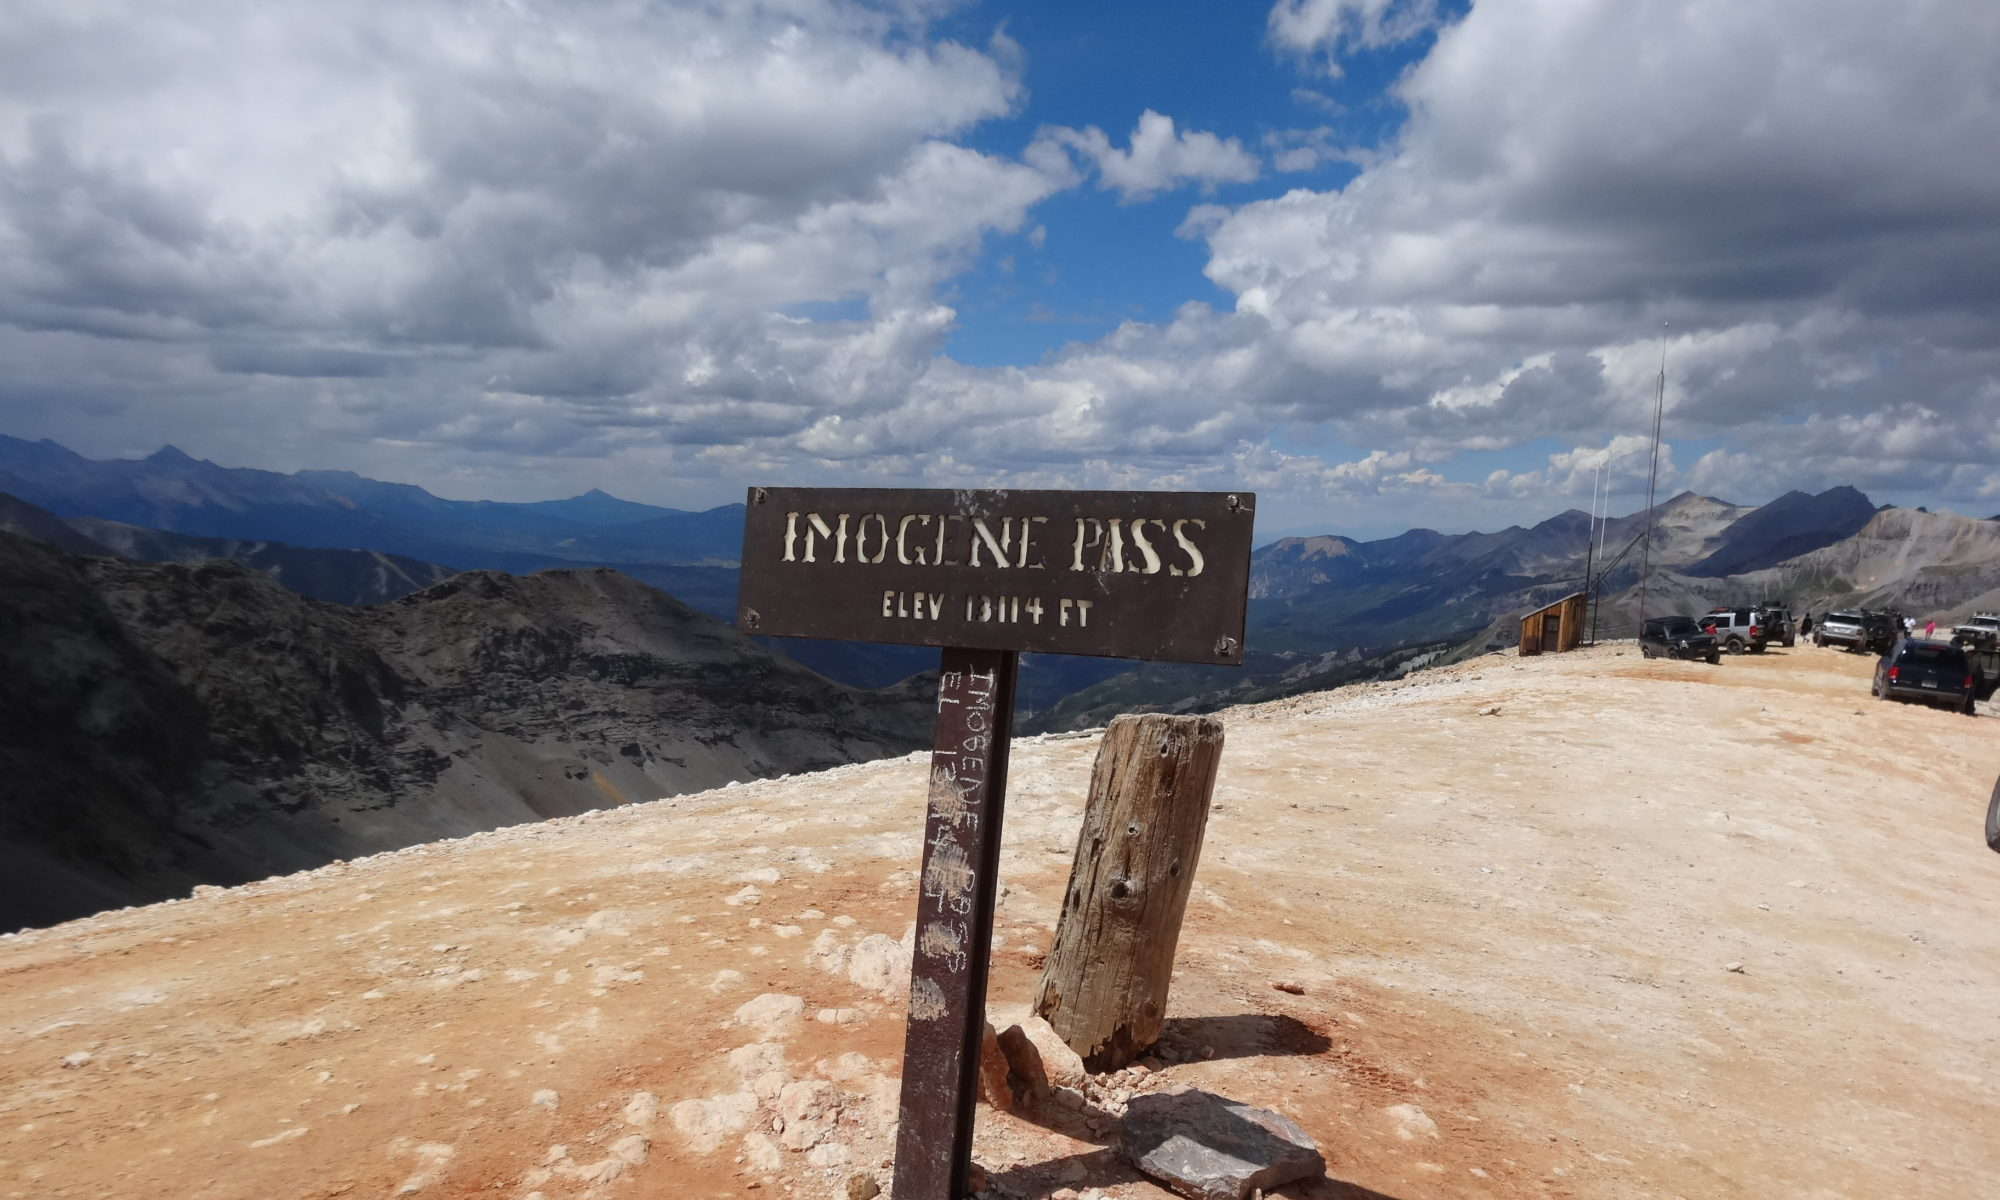 Imogene Pass Run